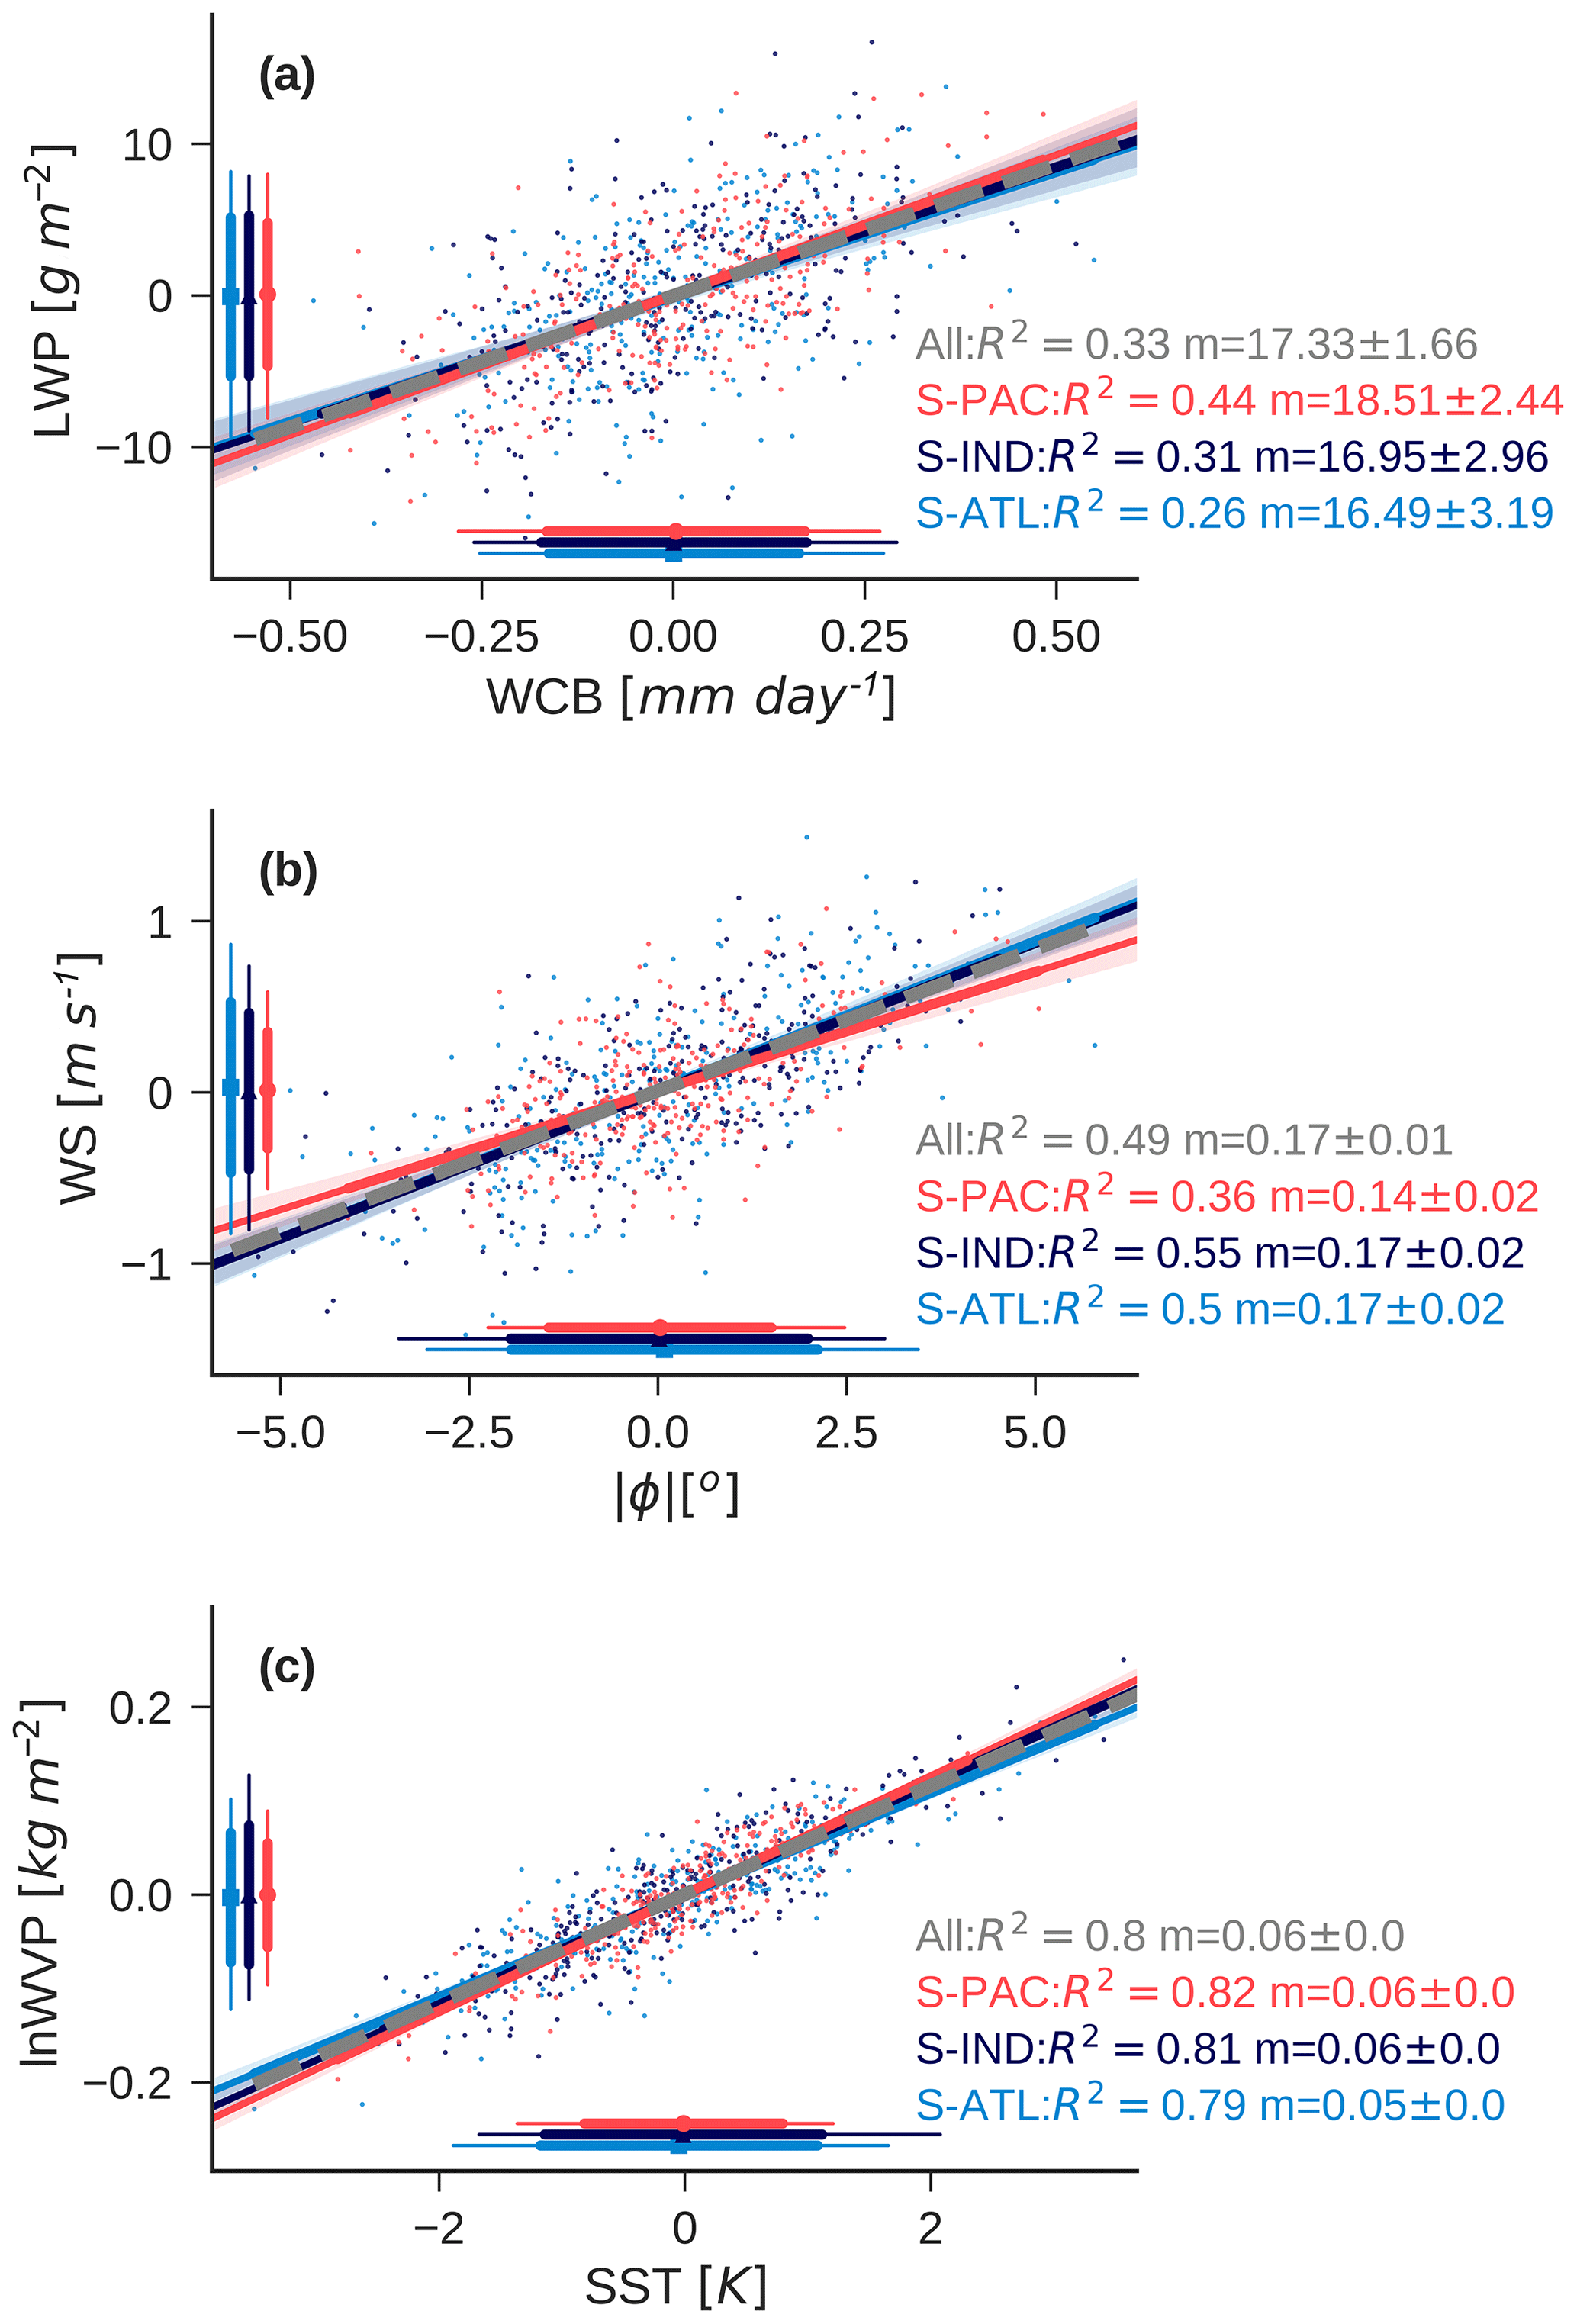 ACP - Cloud feedbacks in extratropical cyclones: insight from long